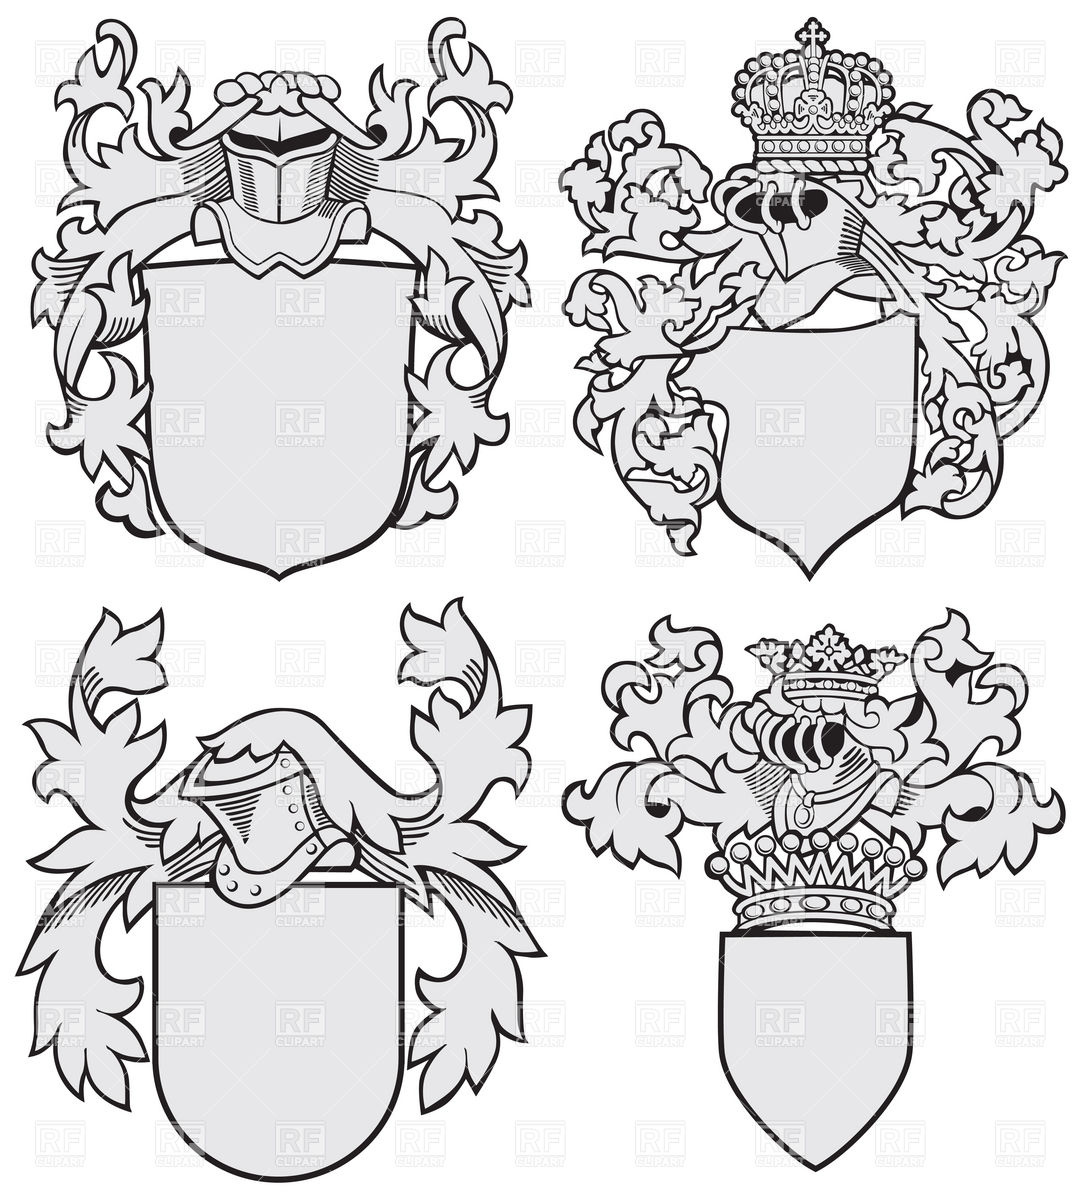 Blank Coat Of Arms Clipart.